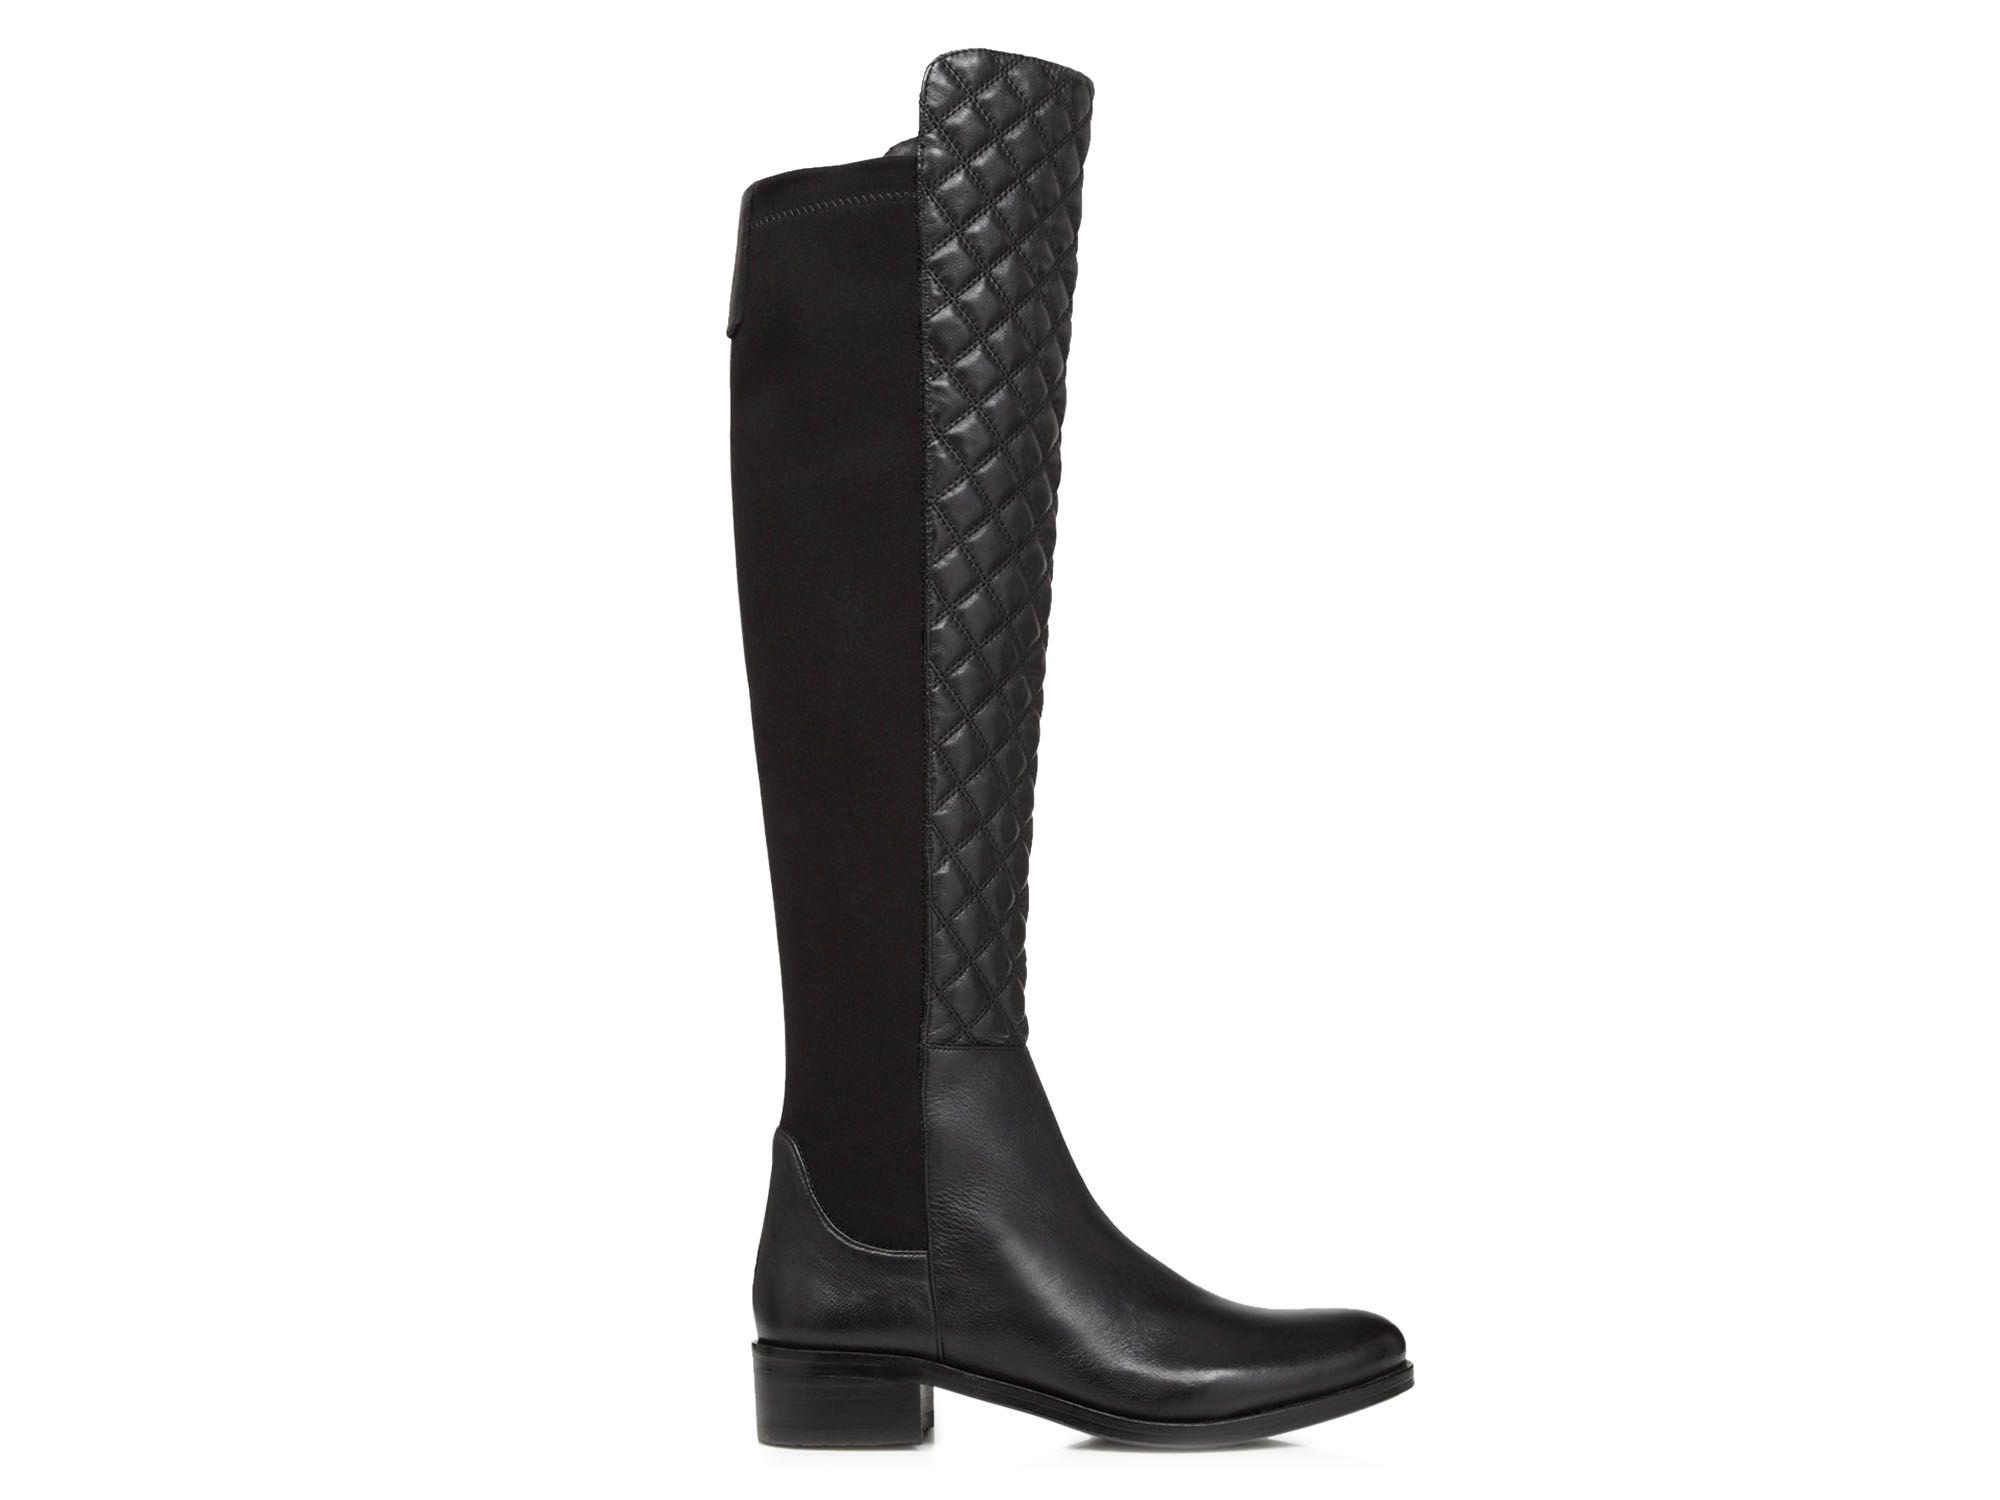 Vince camuto Justina Quilted Stretch Back High Shaft Boots in ... : quilted back boots - Adamdwight.com